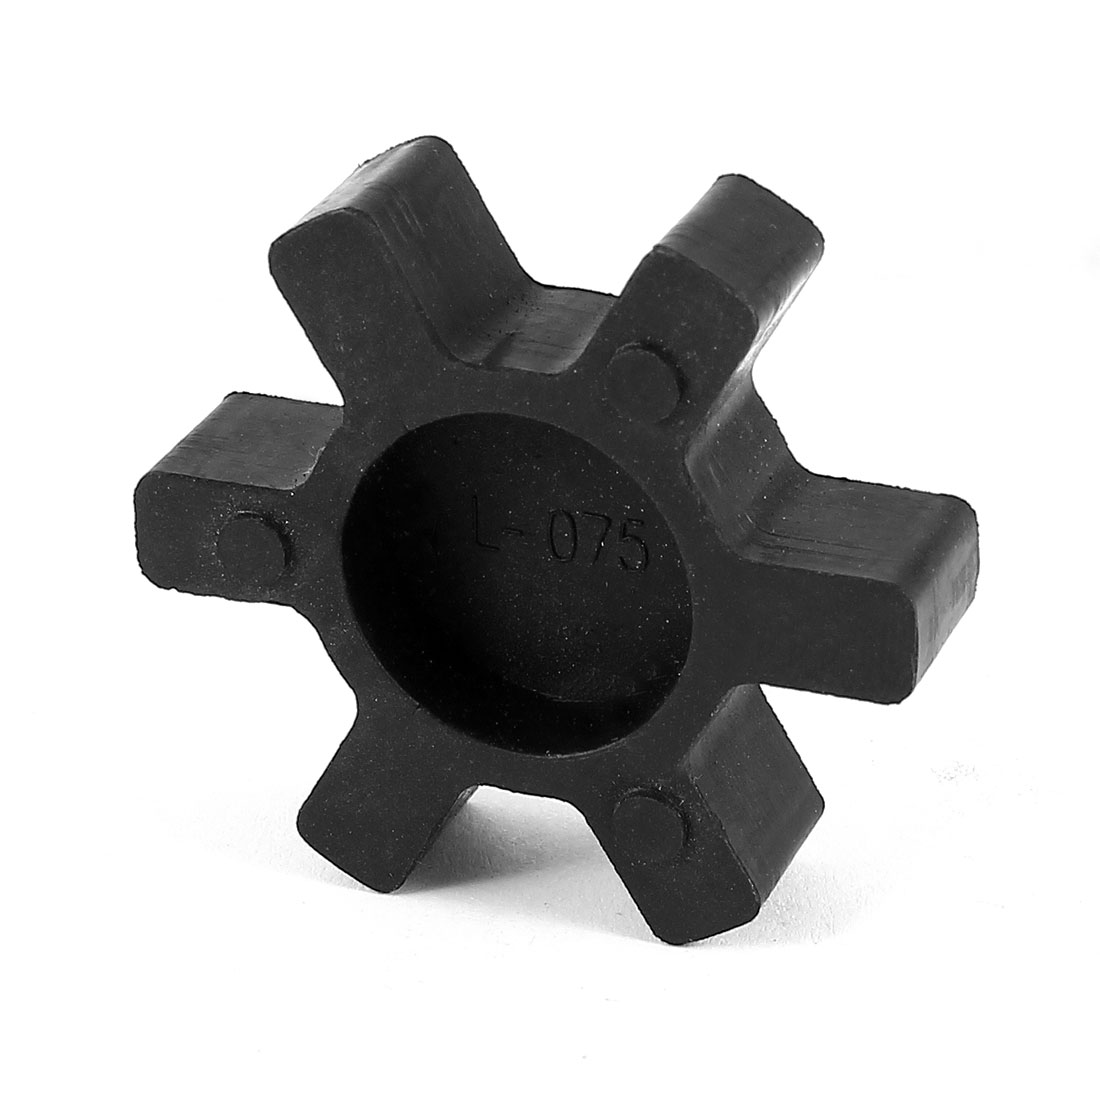 Black 45mm Diameter 6 Petals PU Coupling Shaft Center Spider Coupler Damper